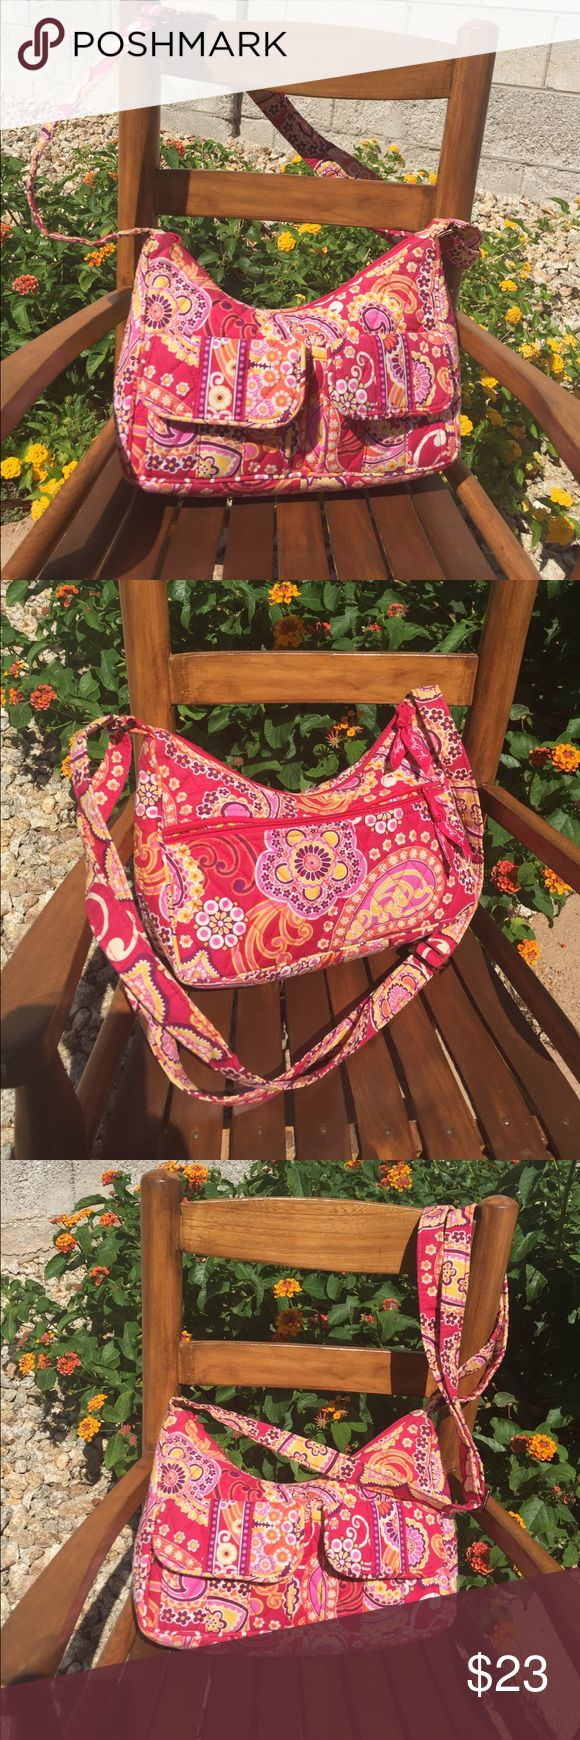 VERA BRADLEY HANDBAG The Cutest VERA BRADLEY HANDBAG WITH  ADJUSTABLE STRAPS  TO CROSS-BODY,  Pattern and Colors add to Great Look! Has two Front  Pockets with Snaps. Out side back large zip Up Pockets.  Inside had Three open pockets . A Perfect size not to big easy take along light weight. Measurements  about 11 by 7 inches.  A matching wristlets also available.  Final Price $23.00 BUNDLE And SAVE 15% Contact me if you have any questions:) Vera Bradley Bags Crossbody Bags